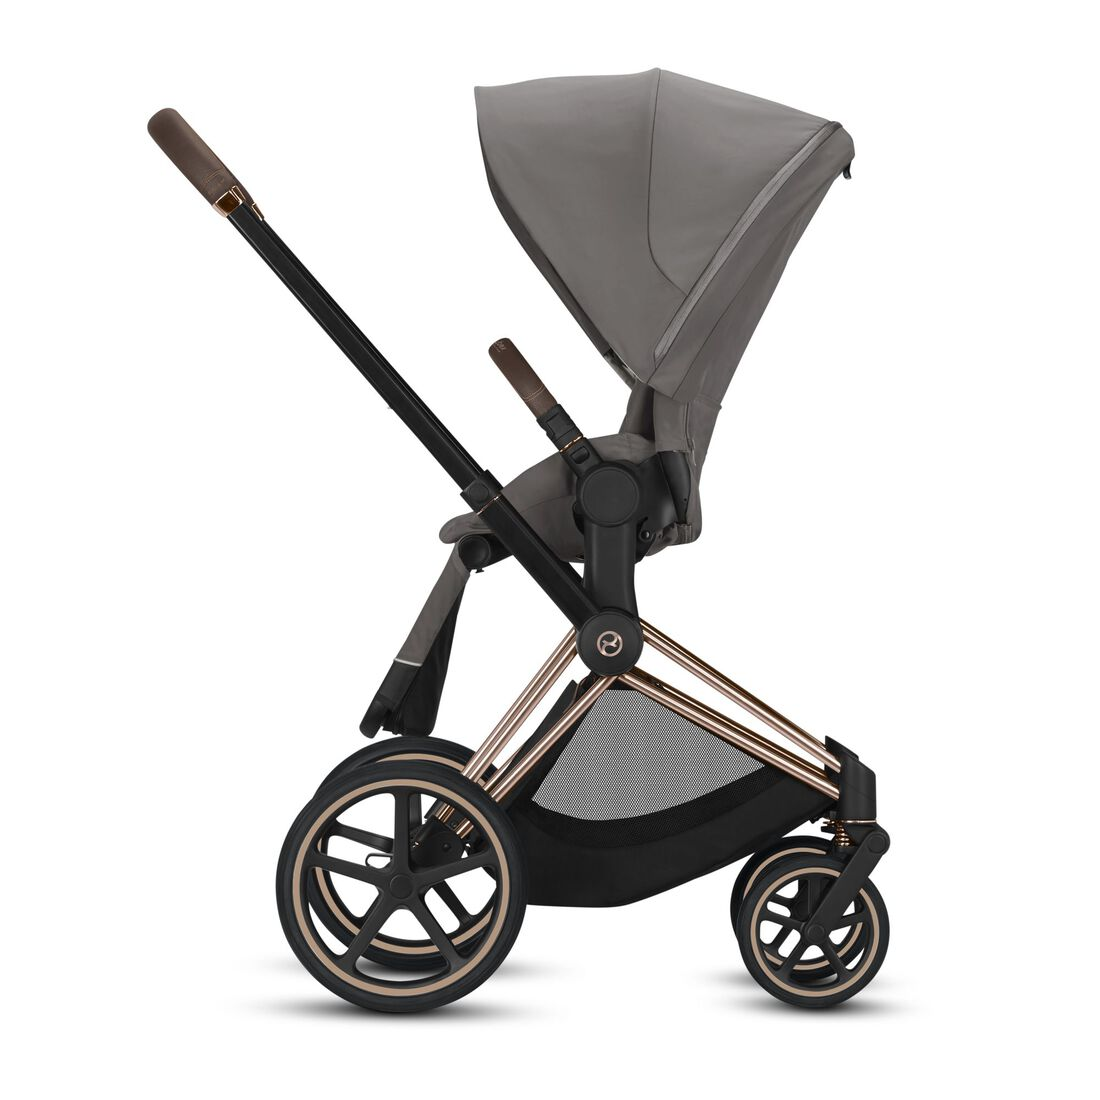 CYBEX Priam Seat Pack - Soho Grey in Soho Grey large image number 2